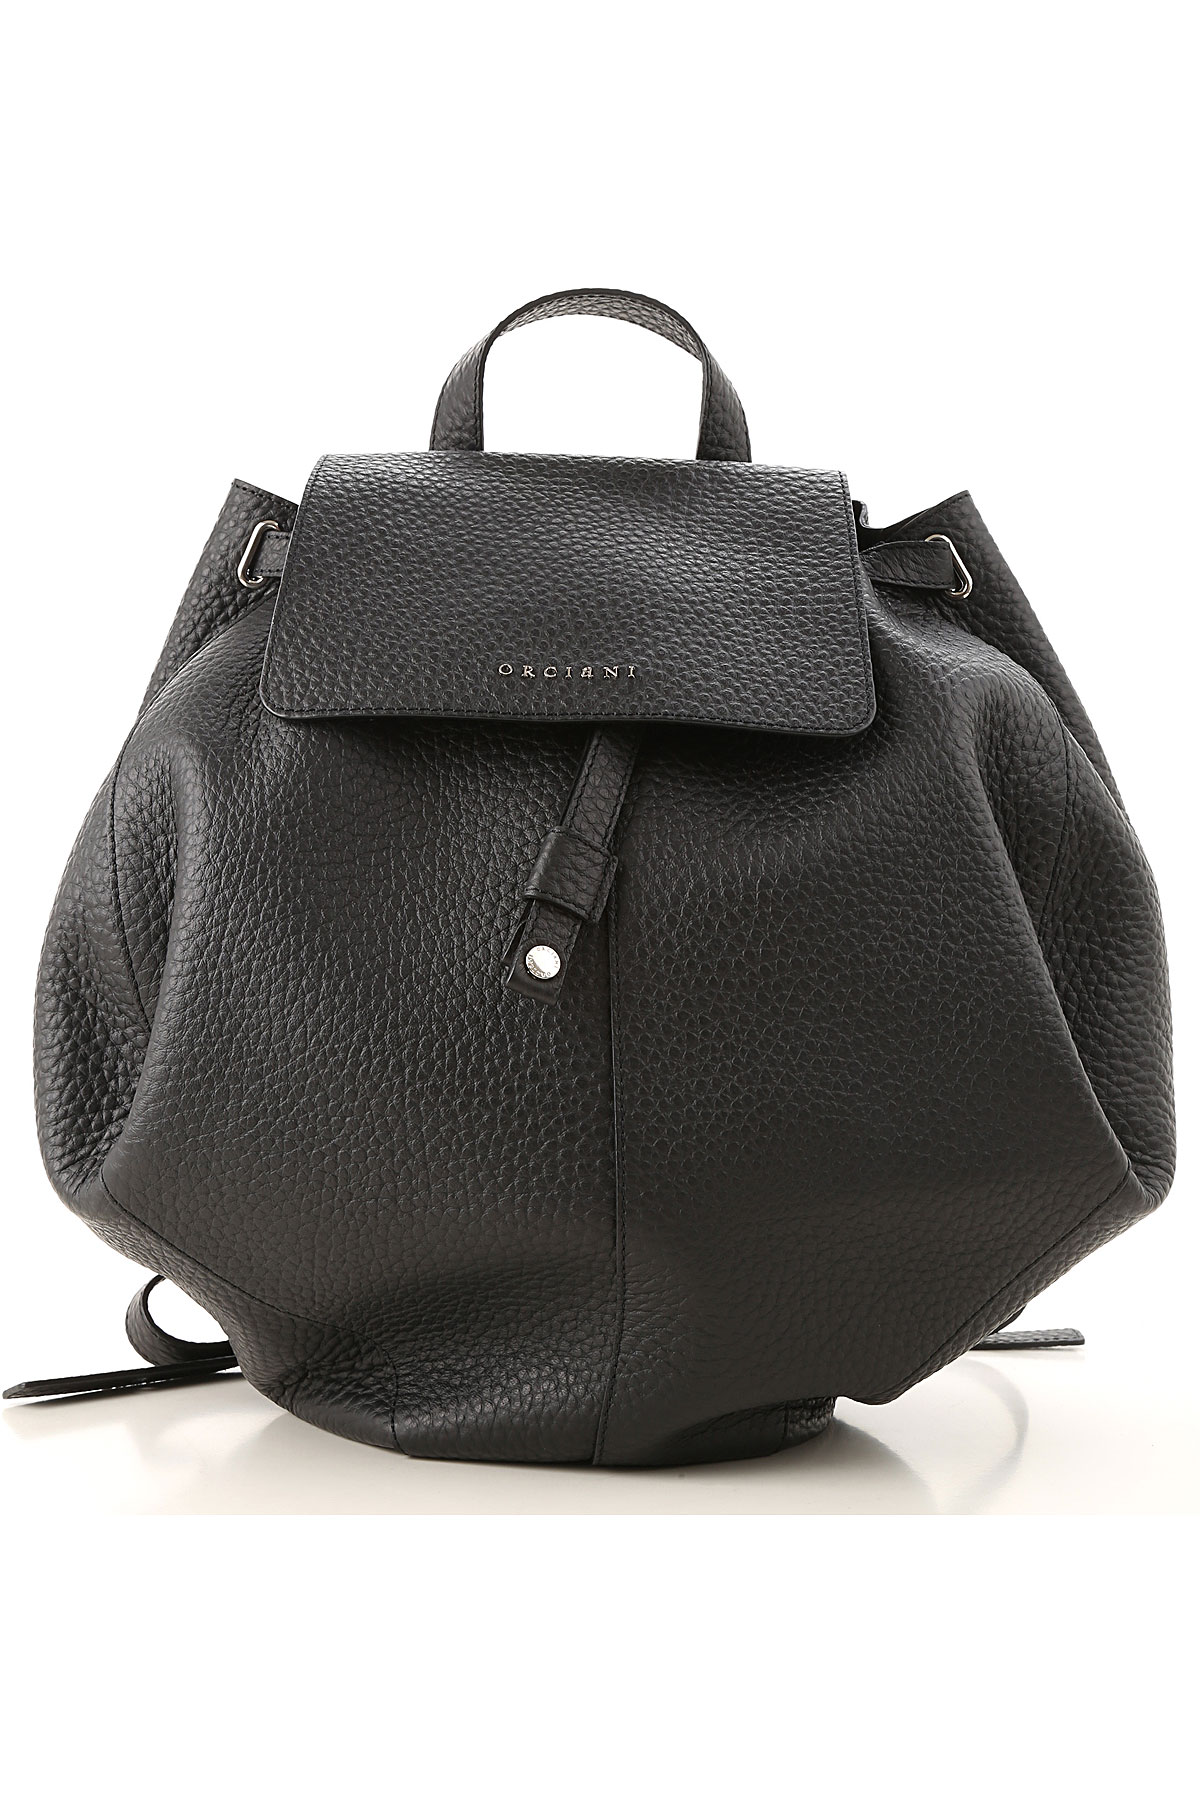 Image of Orciani Backpack for Women, Black, Leather, 2017